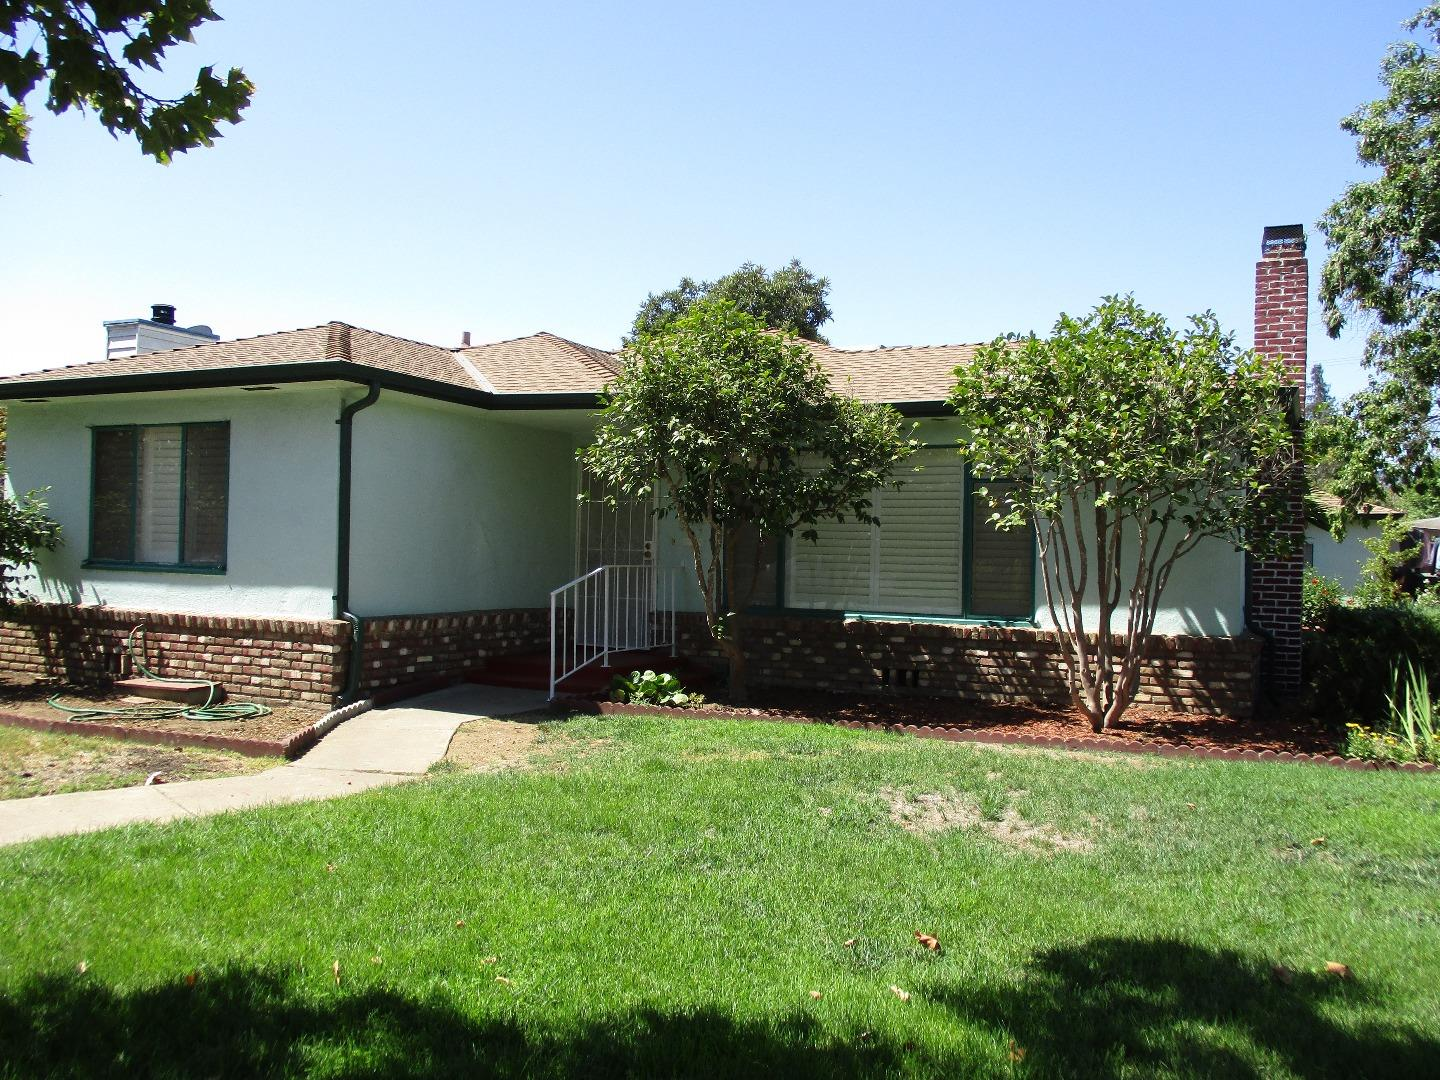 Single Family Home for Rent at 7581 Dowdy Street 7581 Dowdy Street Gilroy, California 95020 United States